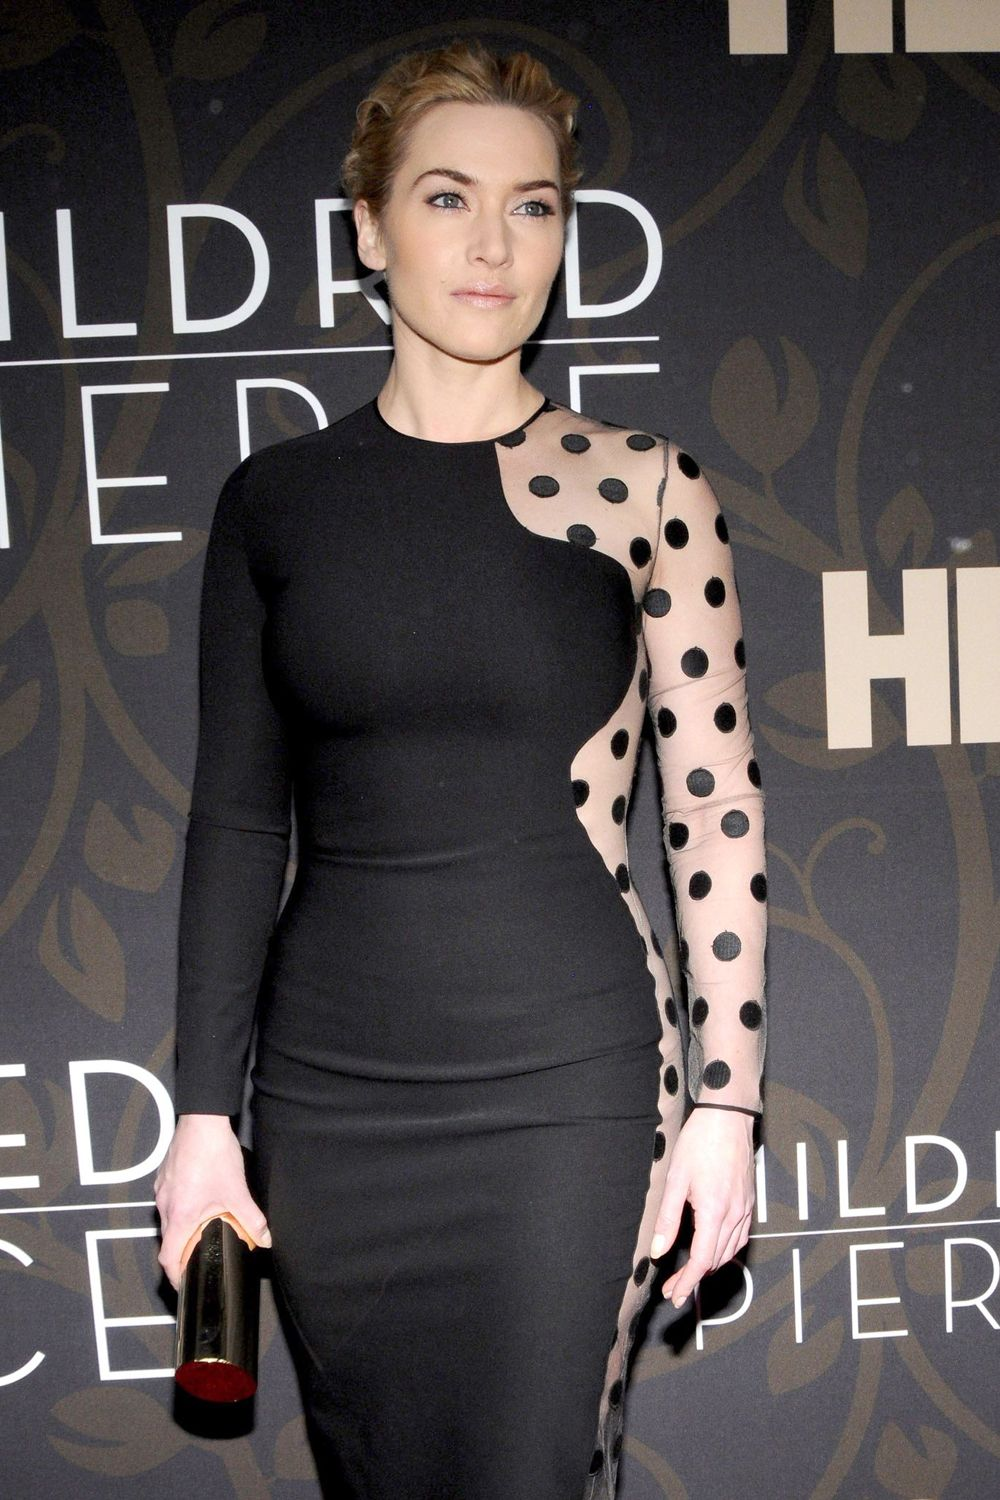 Apologise, Kate winslet great body confirm. agree